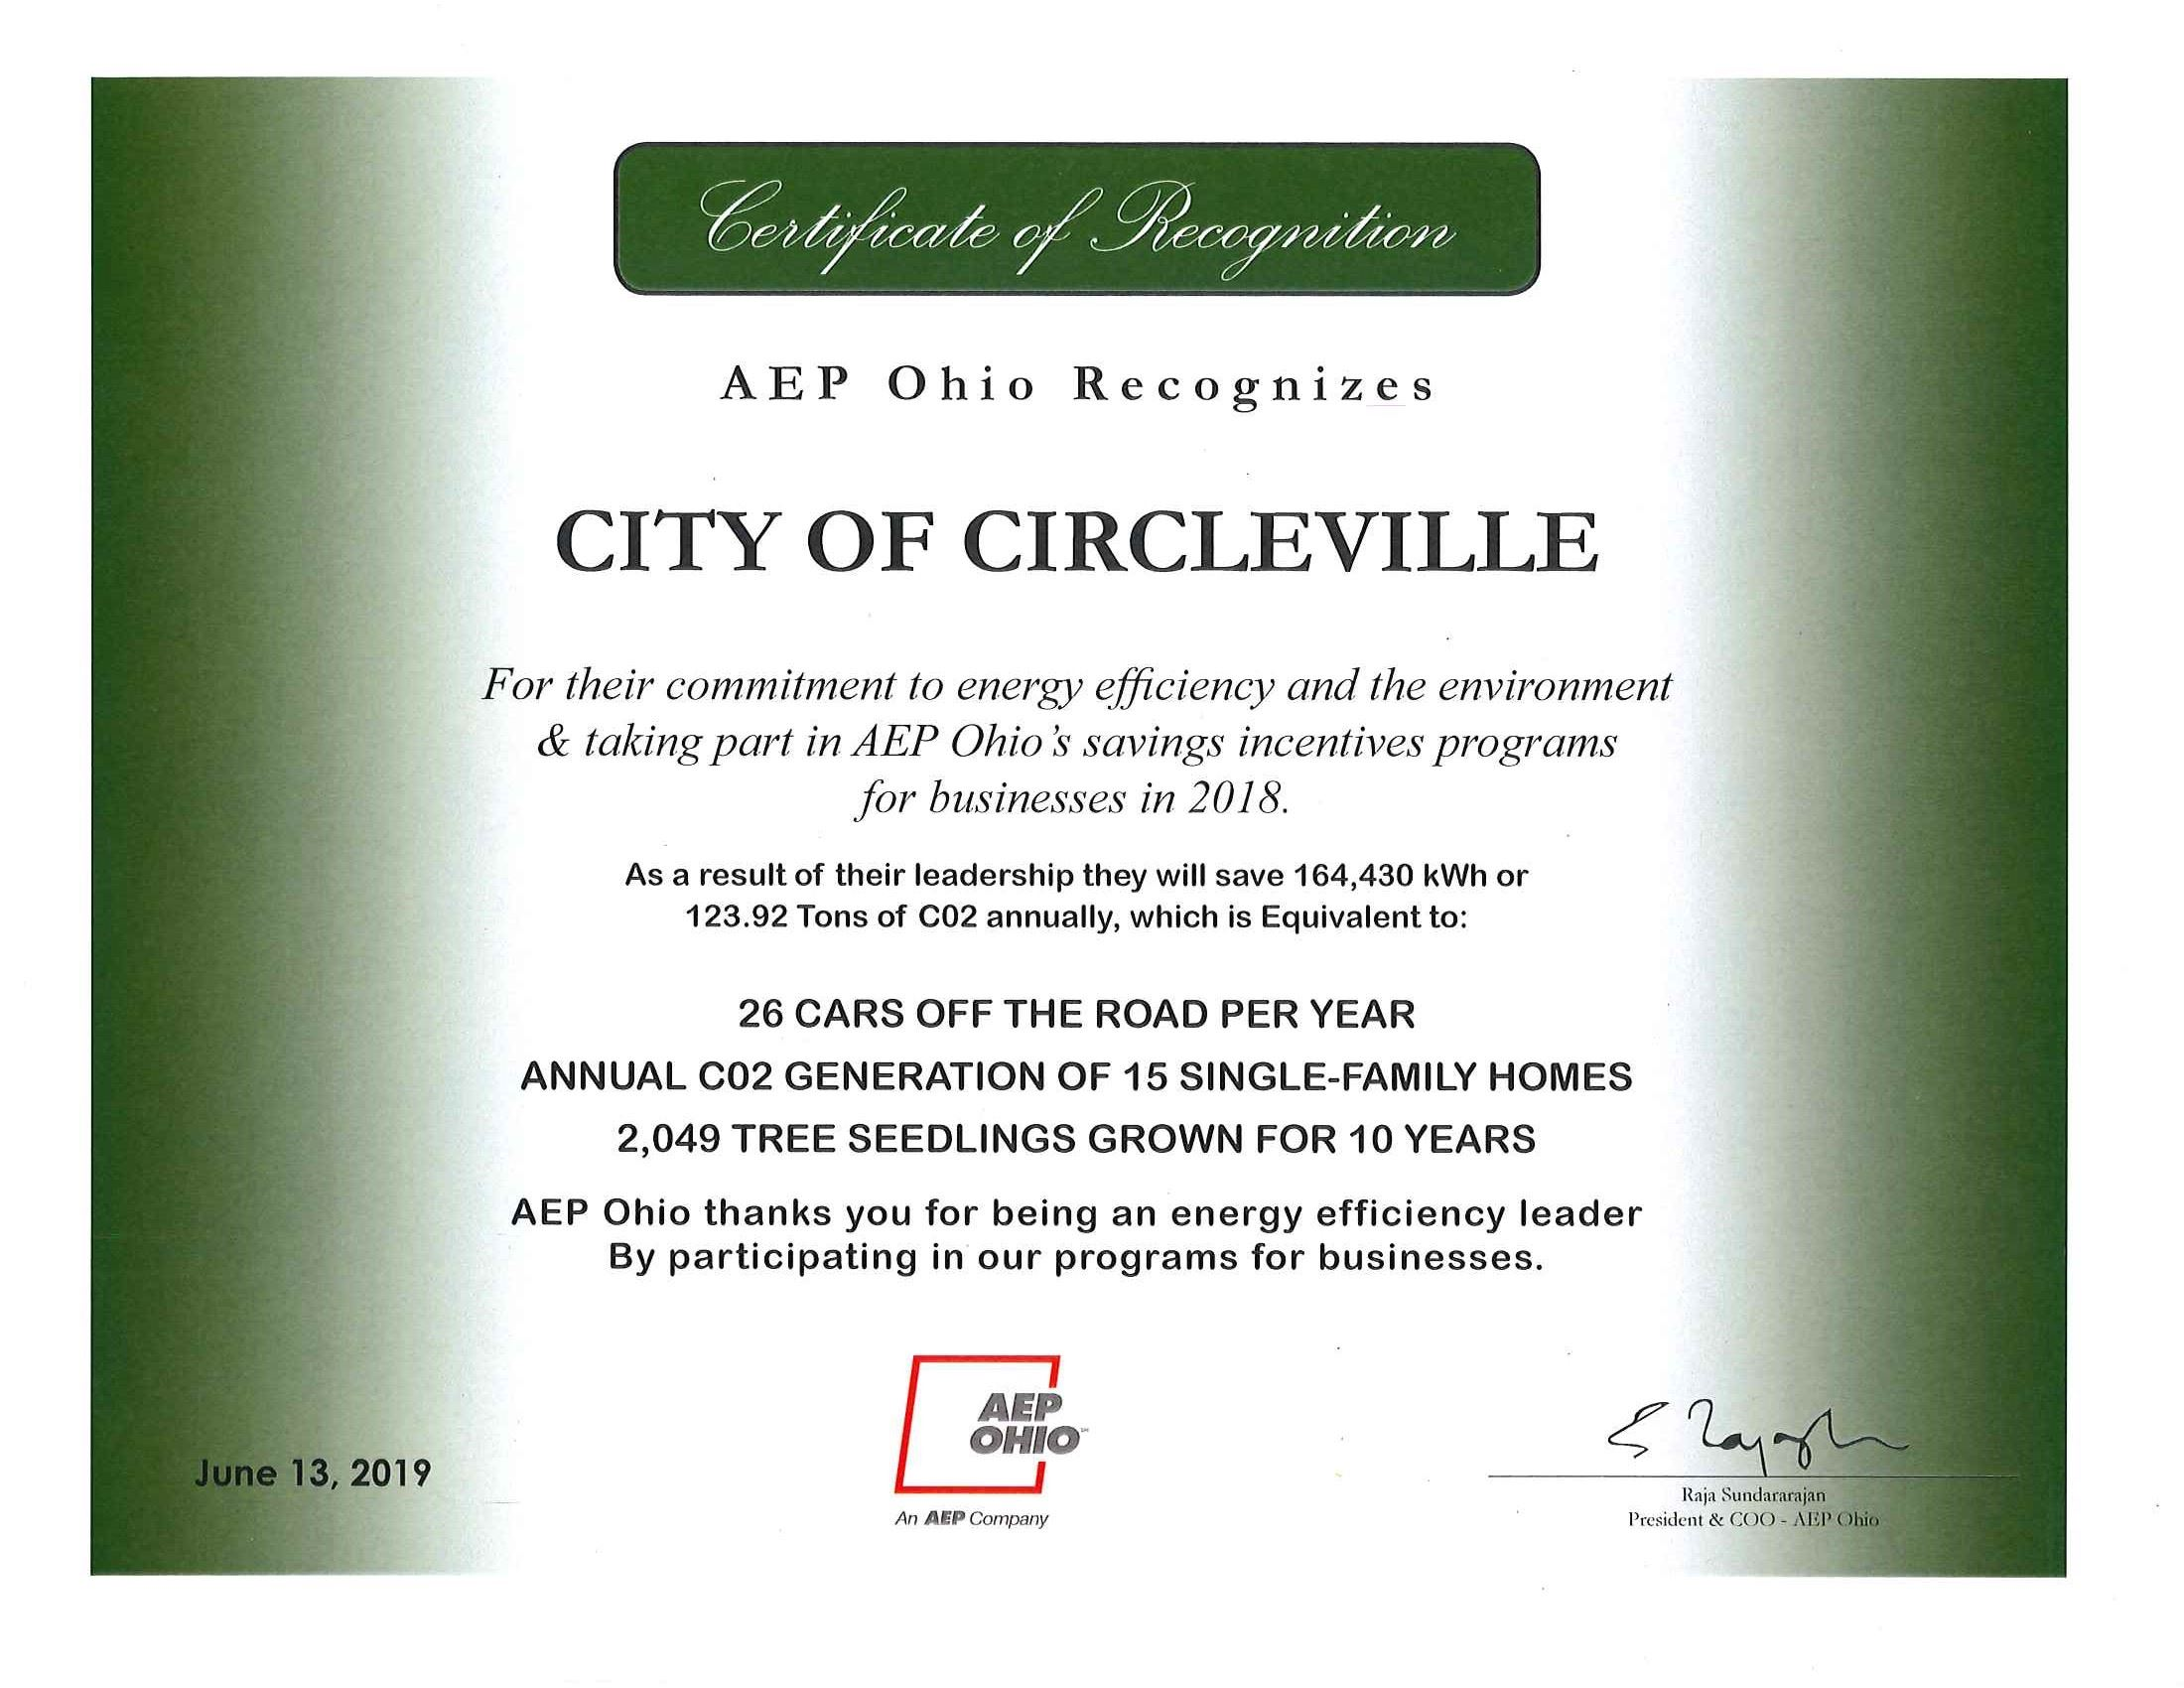 AEP Ohio Certificate of Recognition 2019